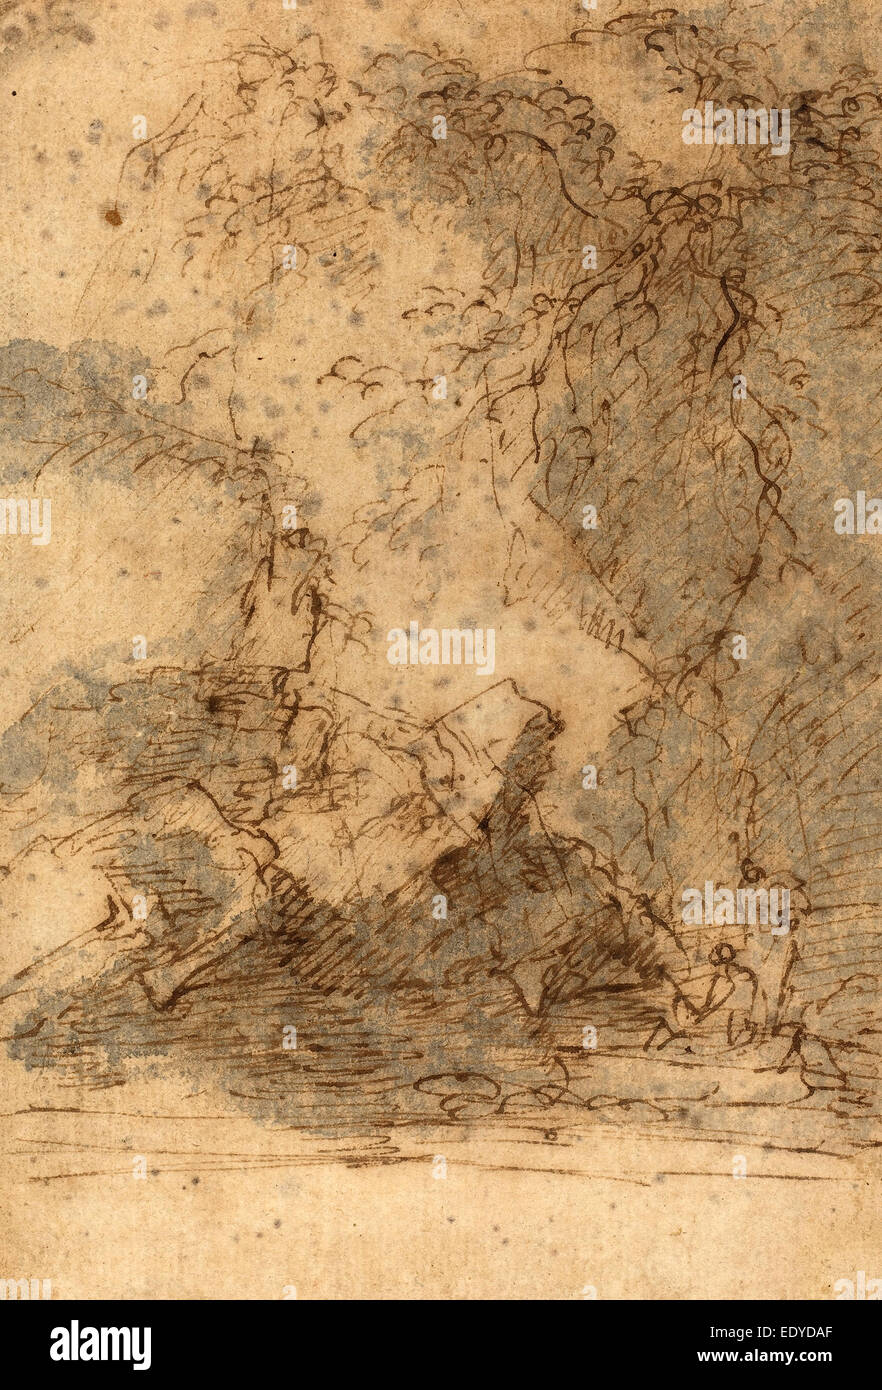 Salvator Rosa (Italian, 1615 - 1673), Landscape, mid 1660s, pen and brown ink with gray wash on laid paper Stock Photo